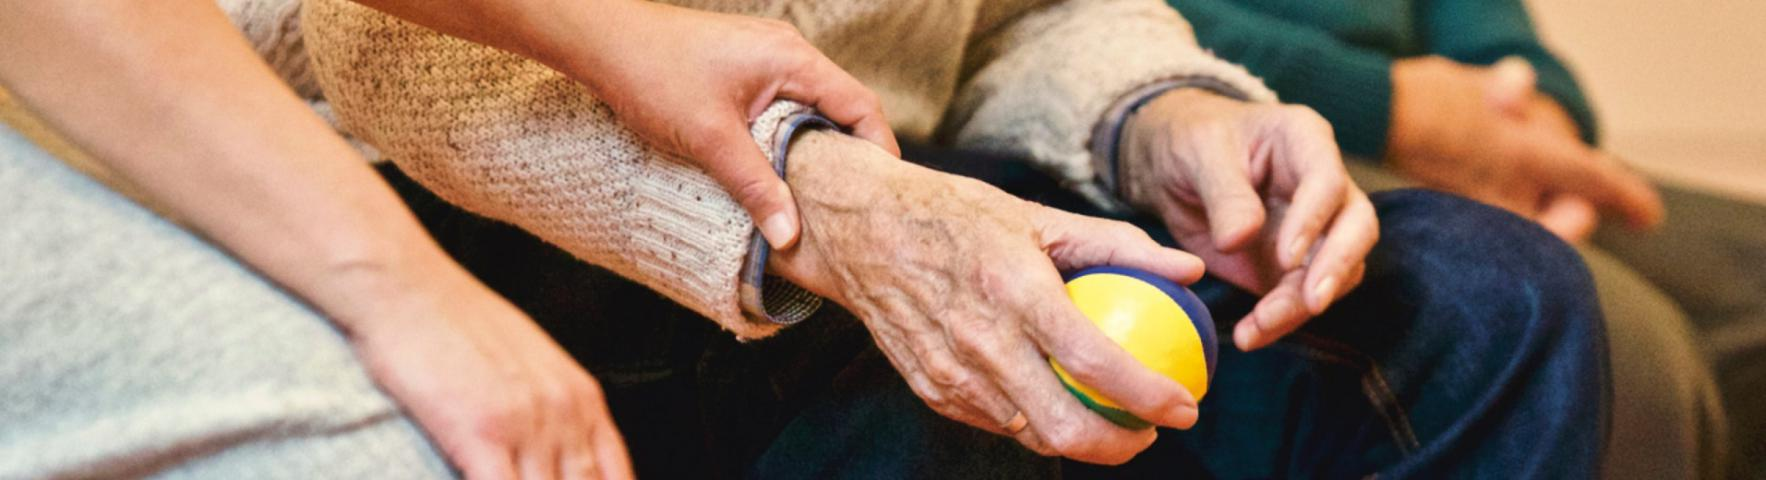 Close up of holding hands a younger person and an older person holding a ball.